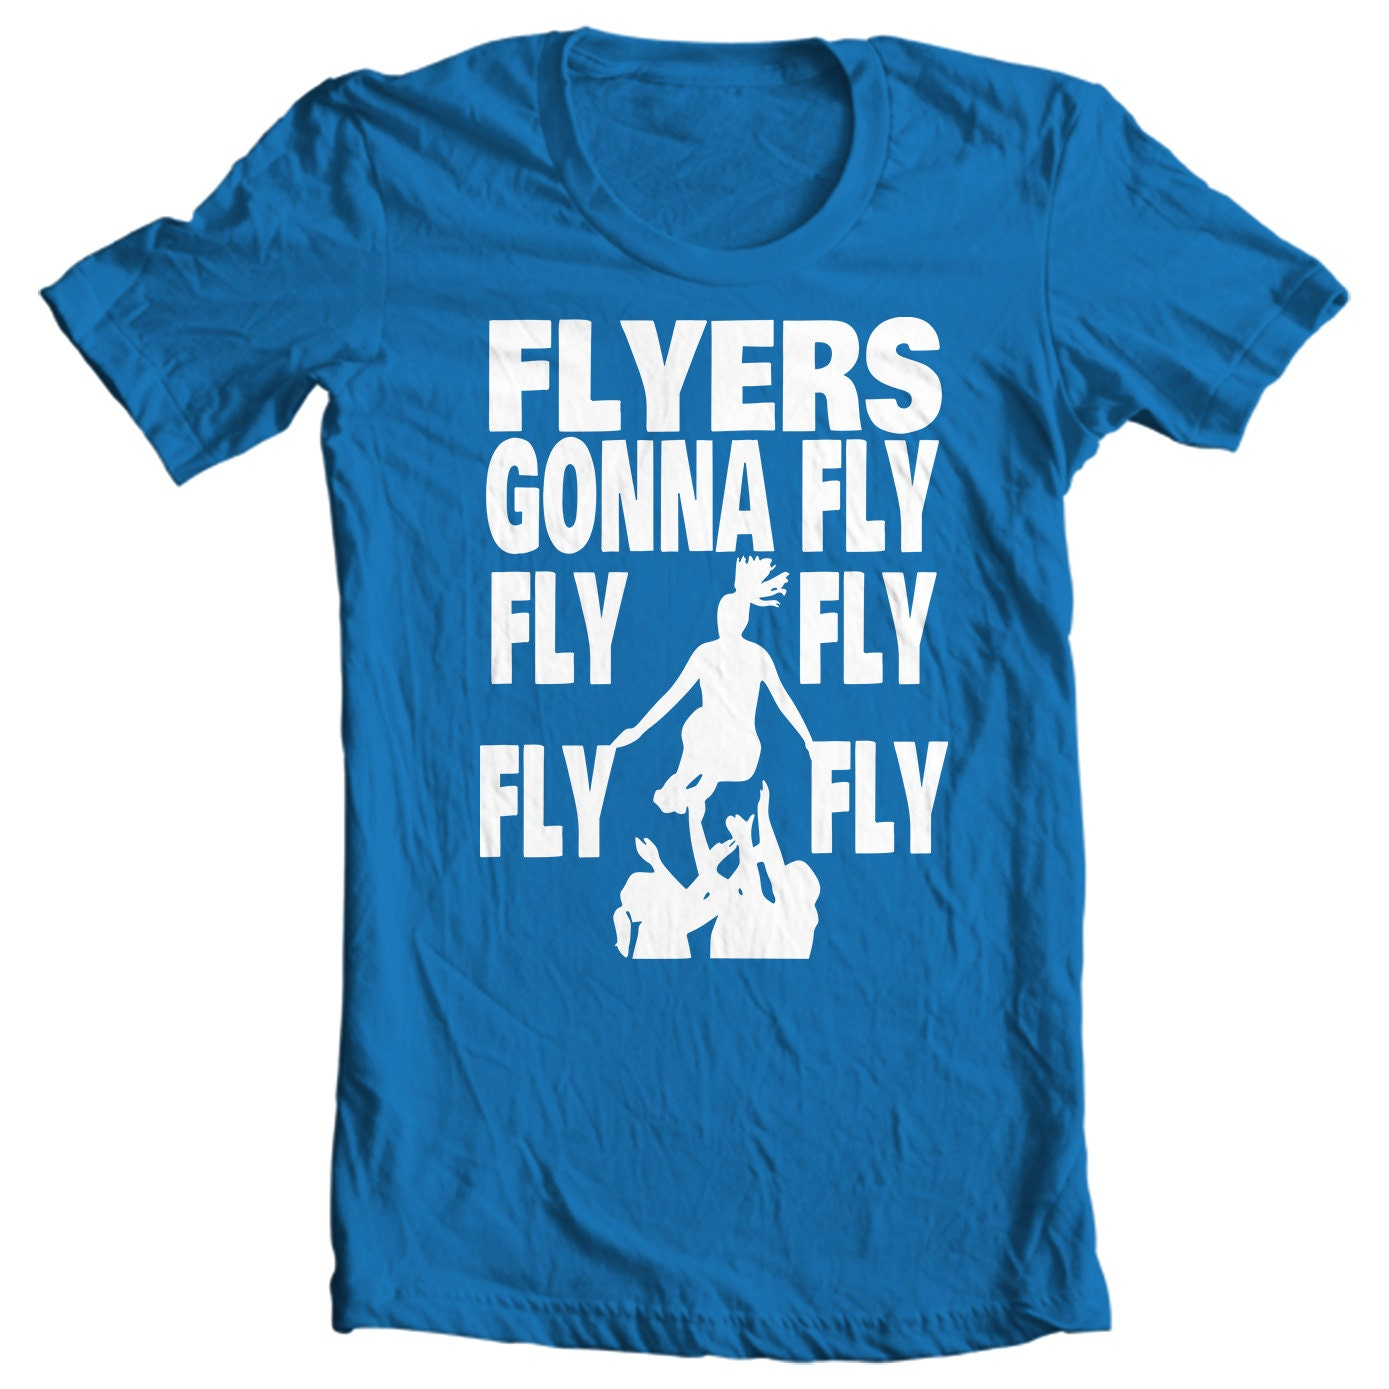 Cheer Life - Flyers Gonna Fly T-Shirt